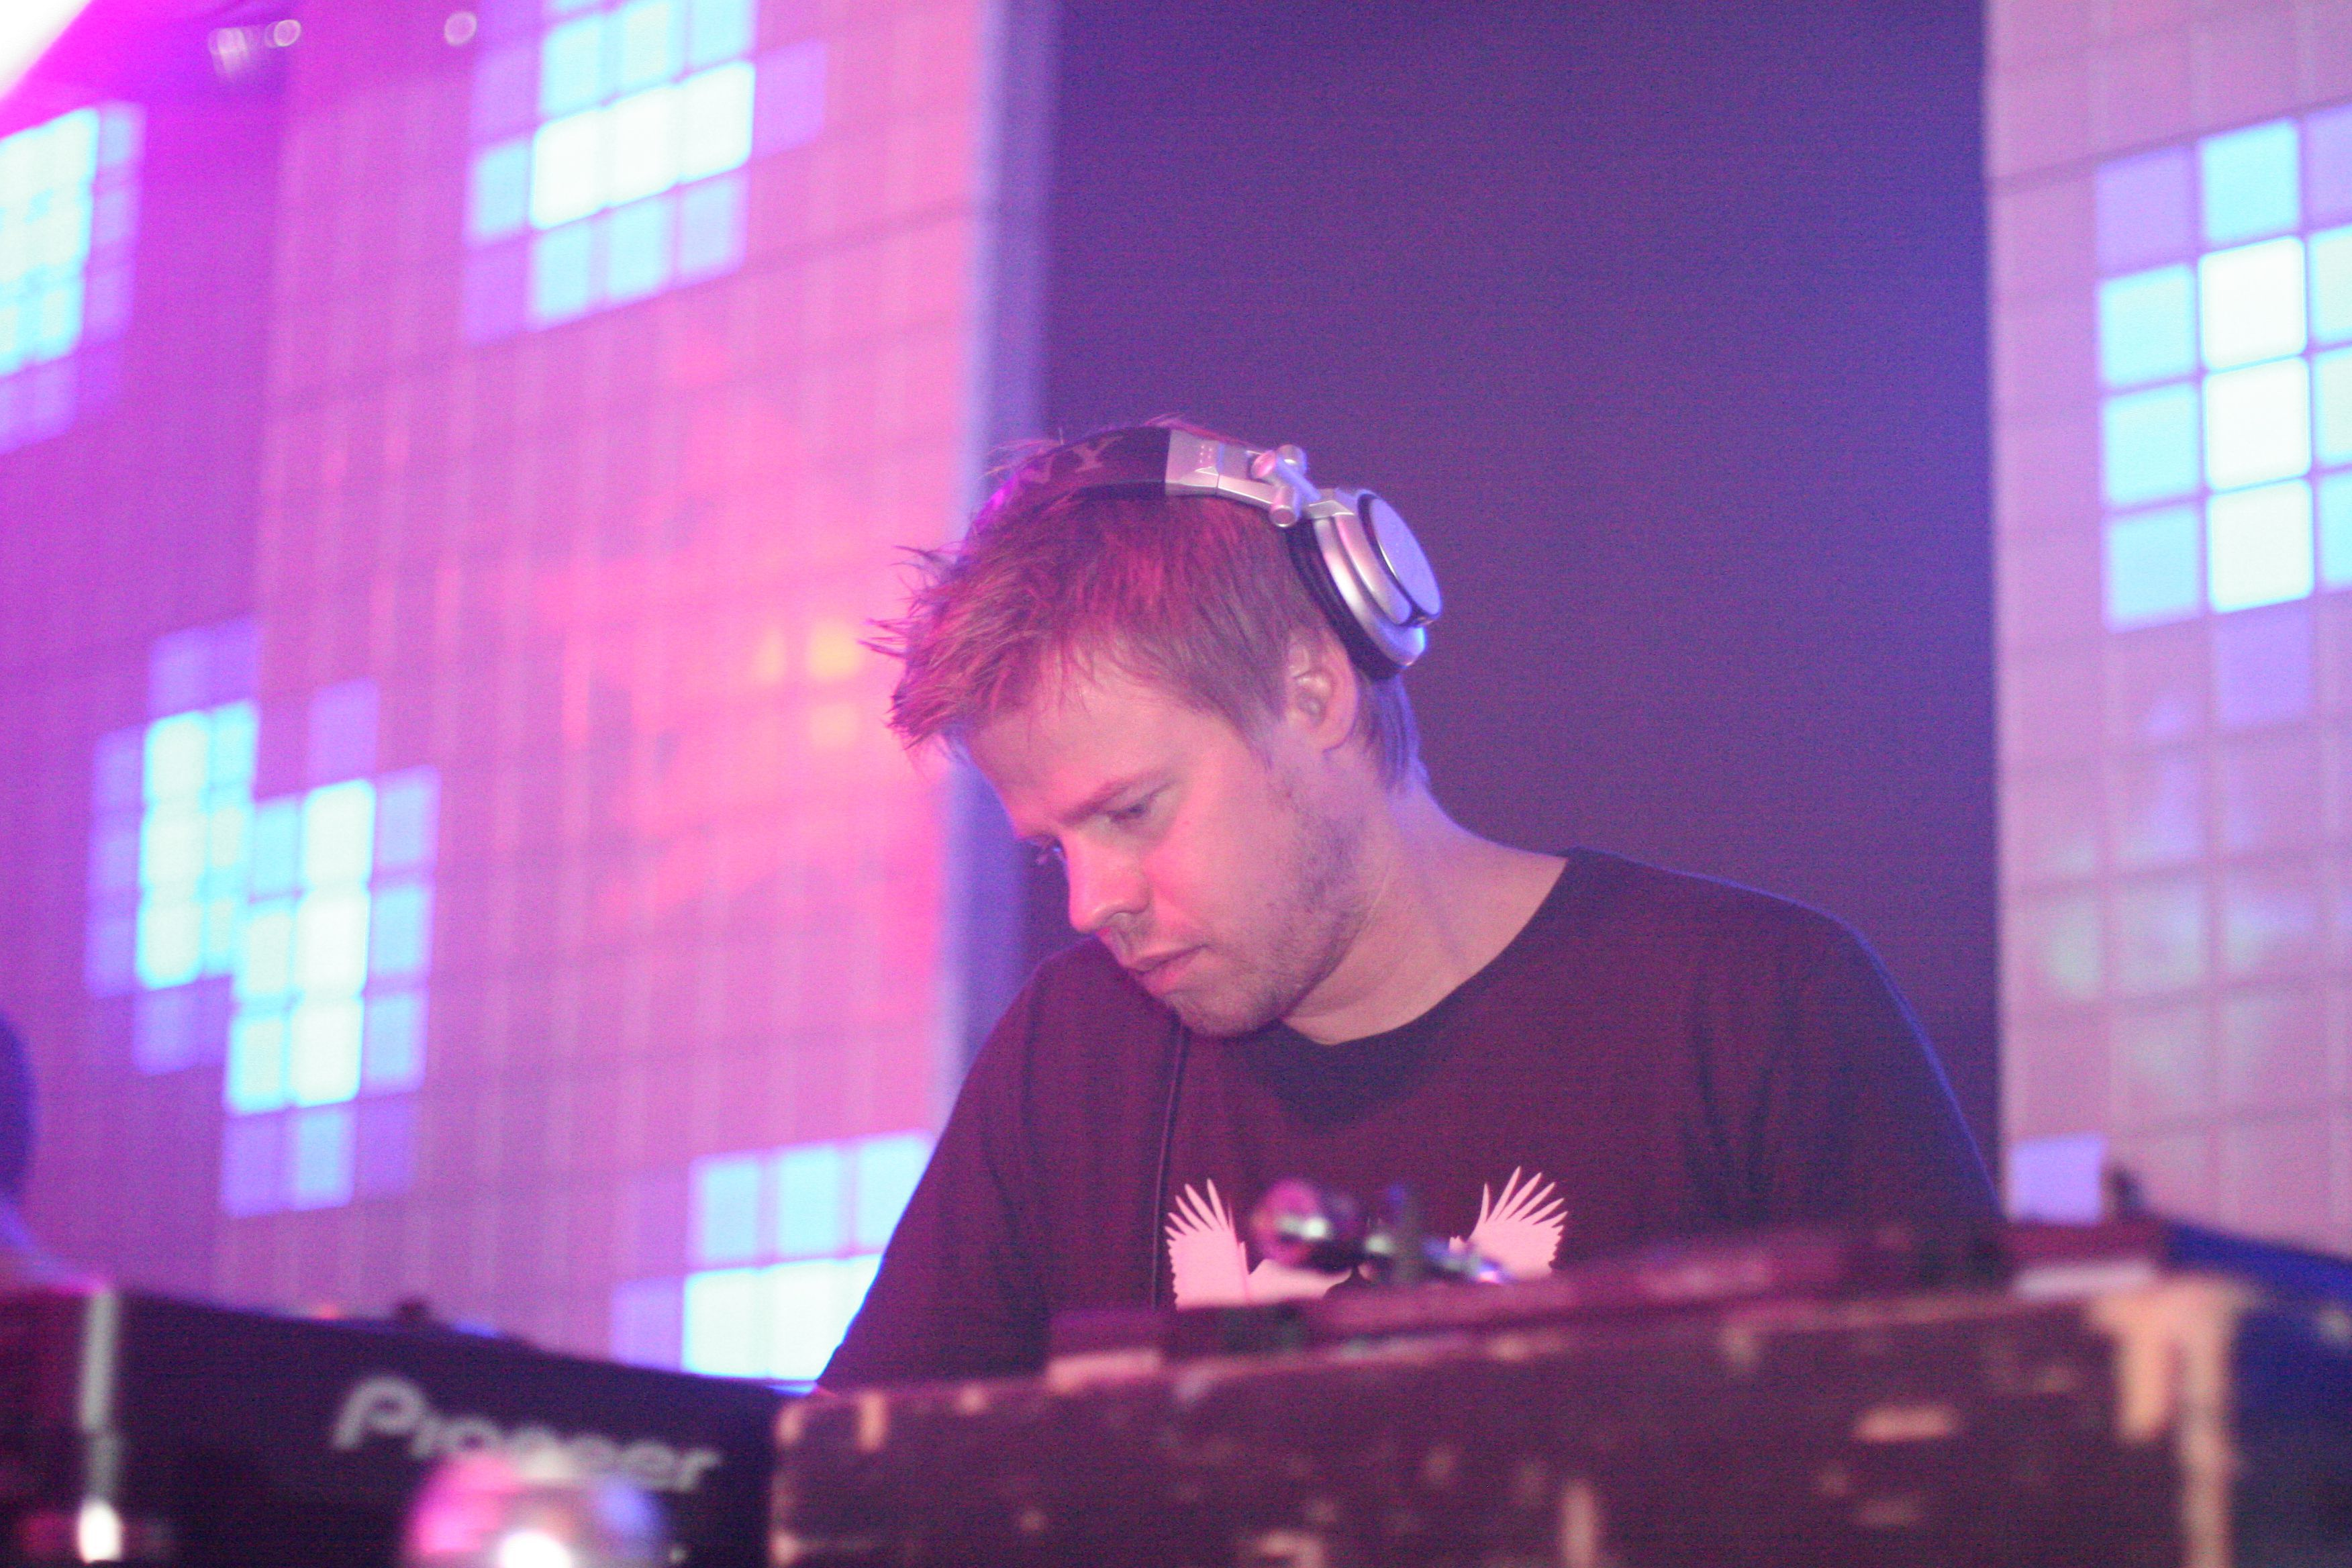 Ferry Corsten Computer Wallpaper